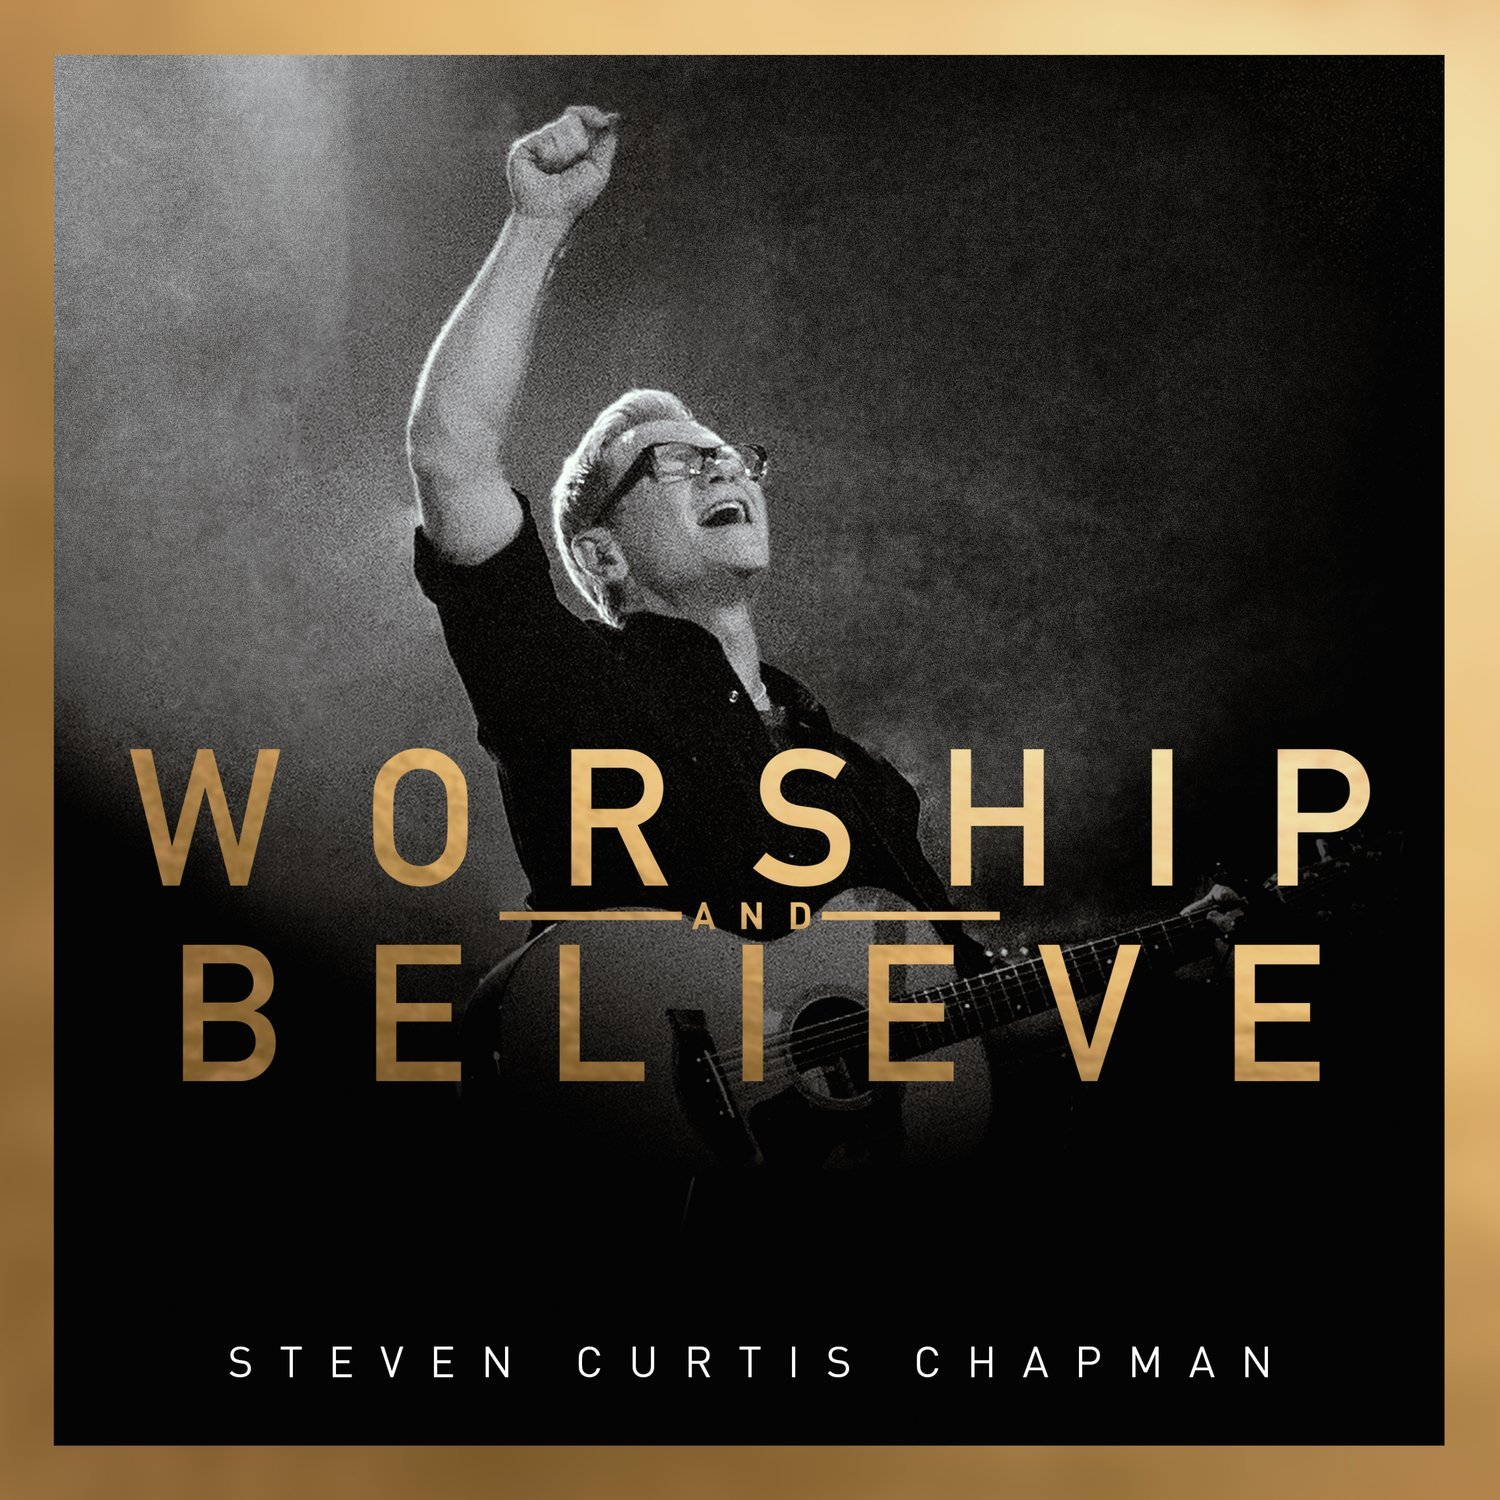 Image result for steven curtis chapman worship and believe